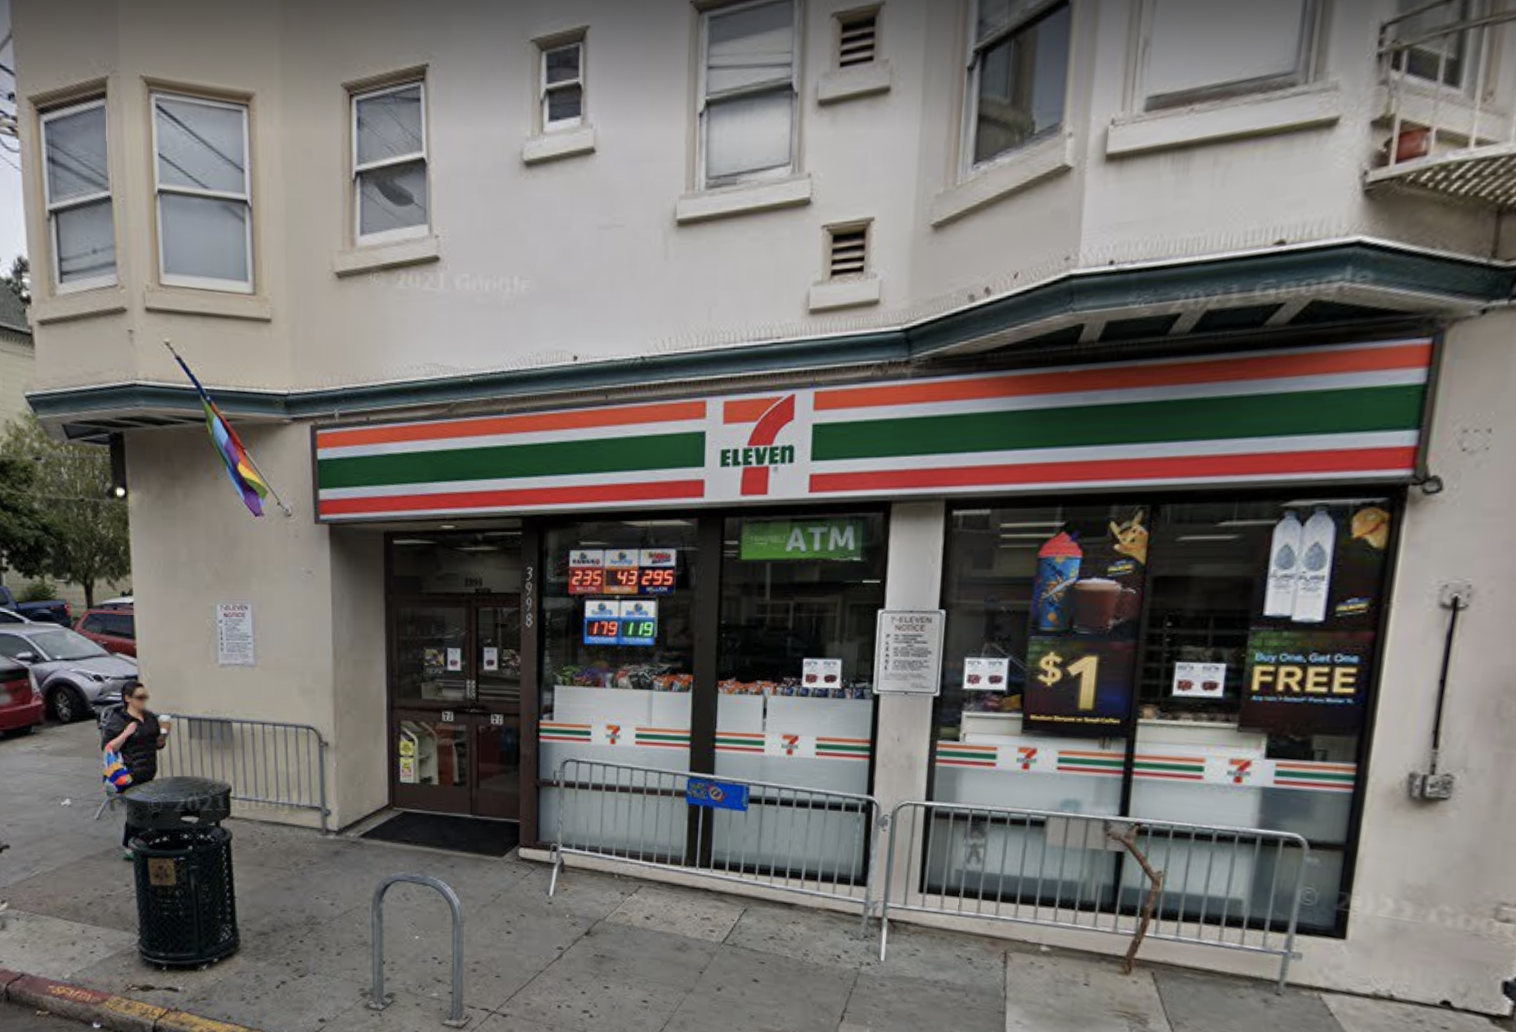 A 7-Eleven in San Francisco's Castro District has permanently closed